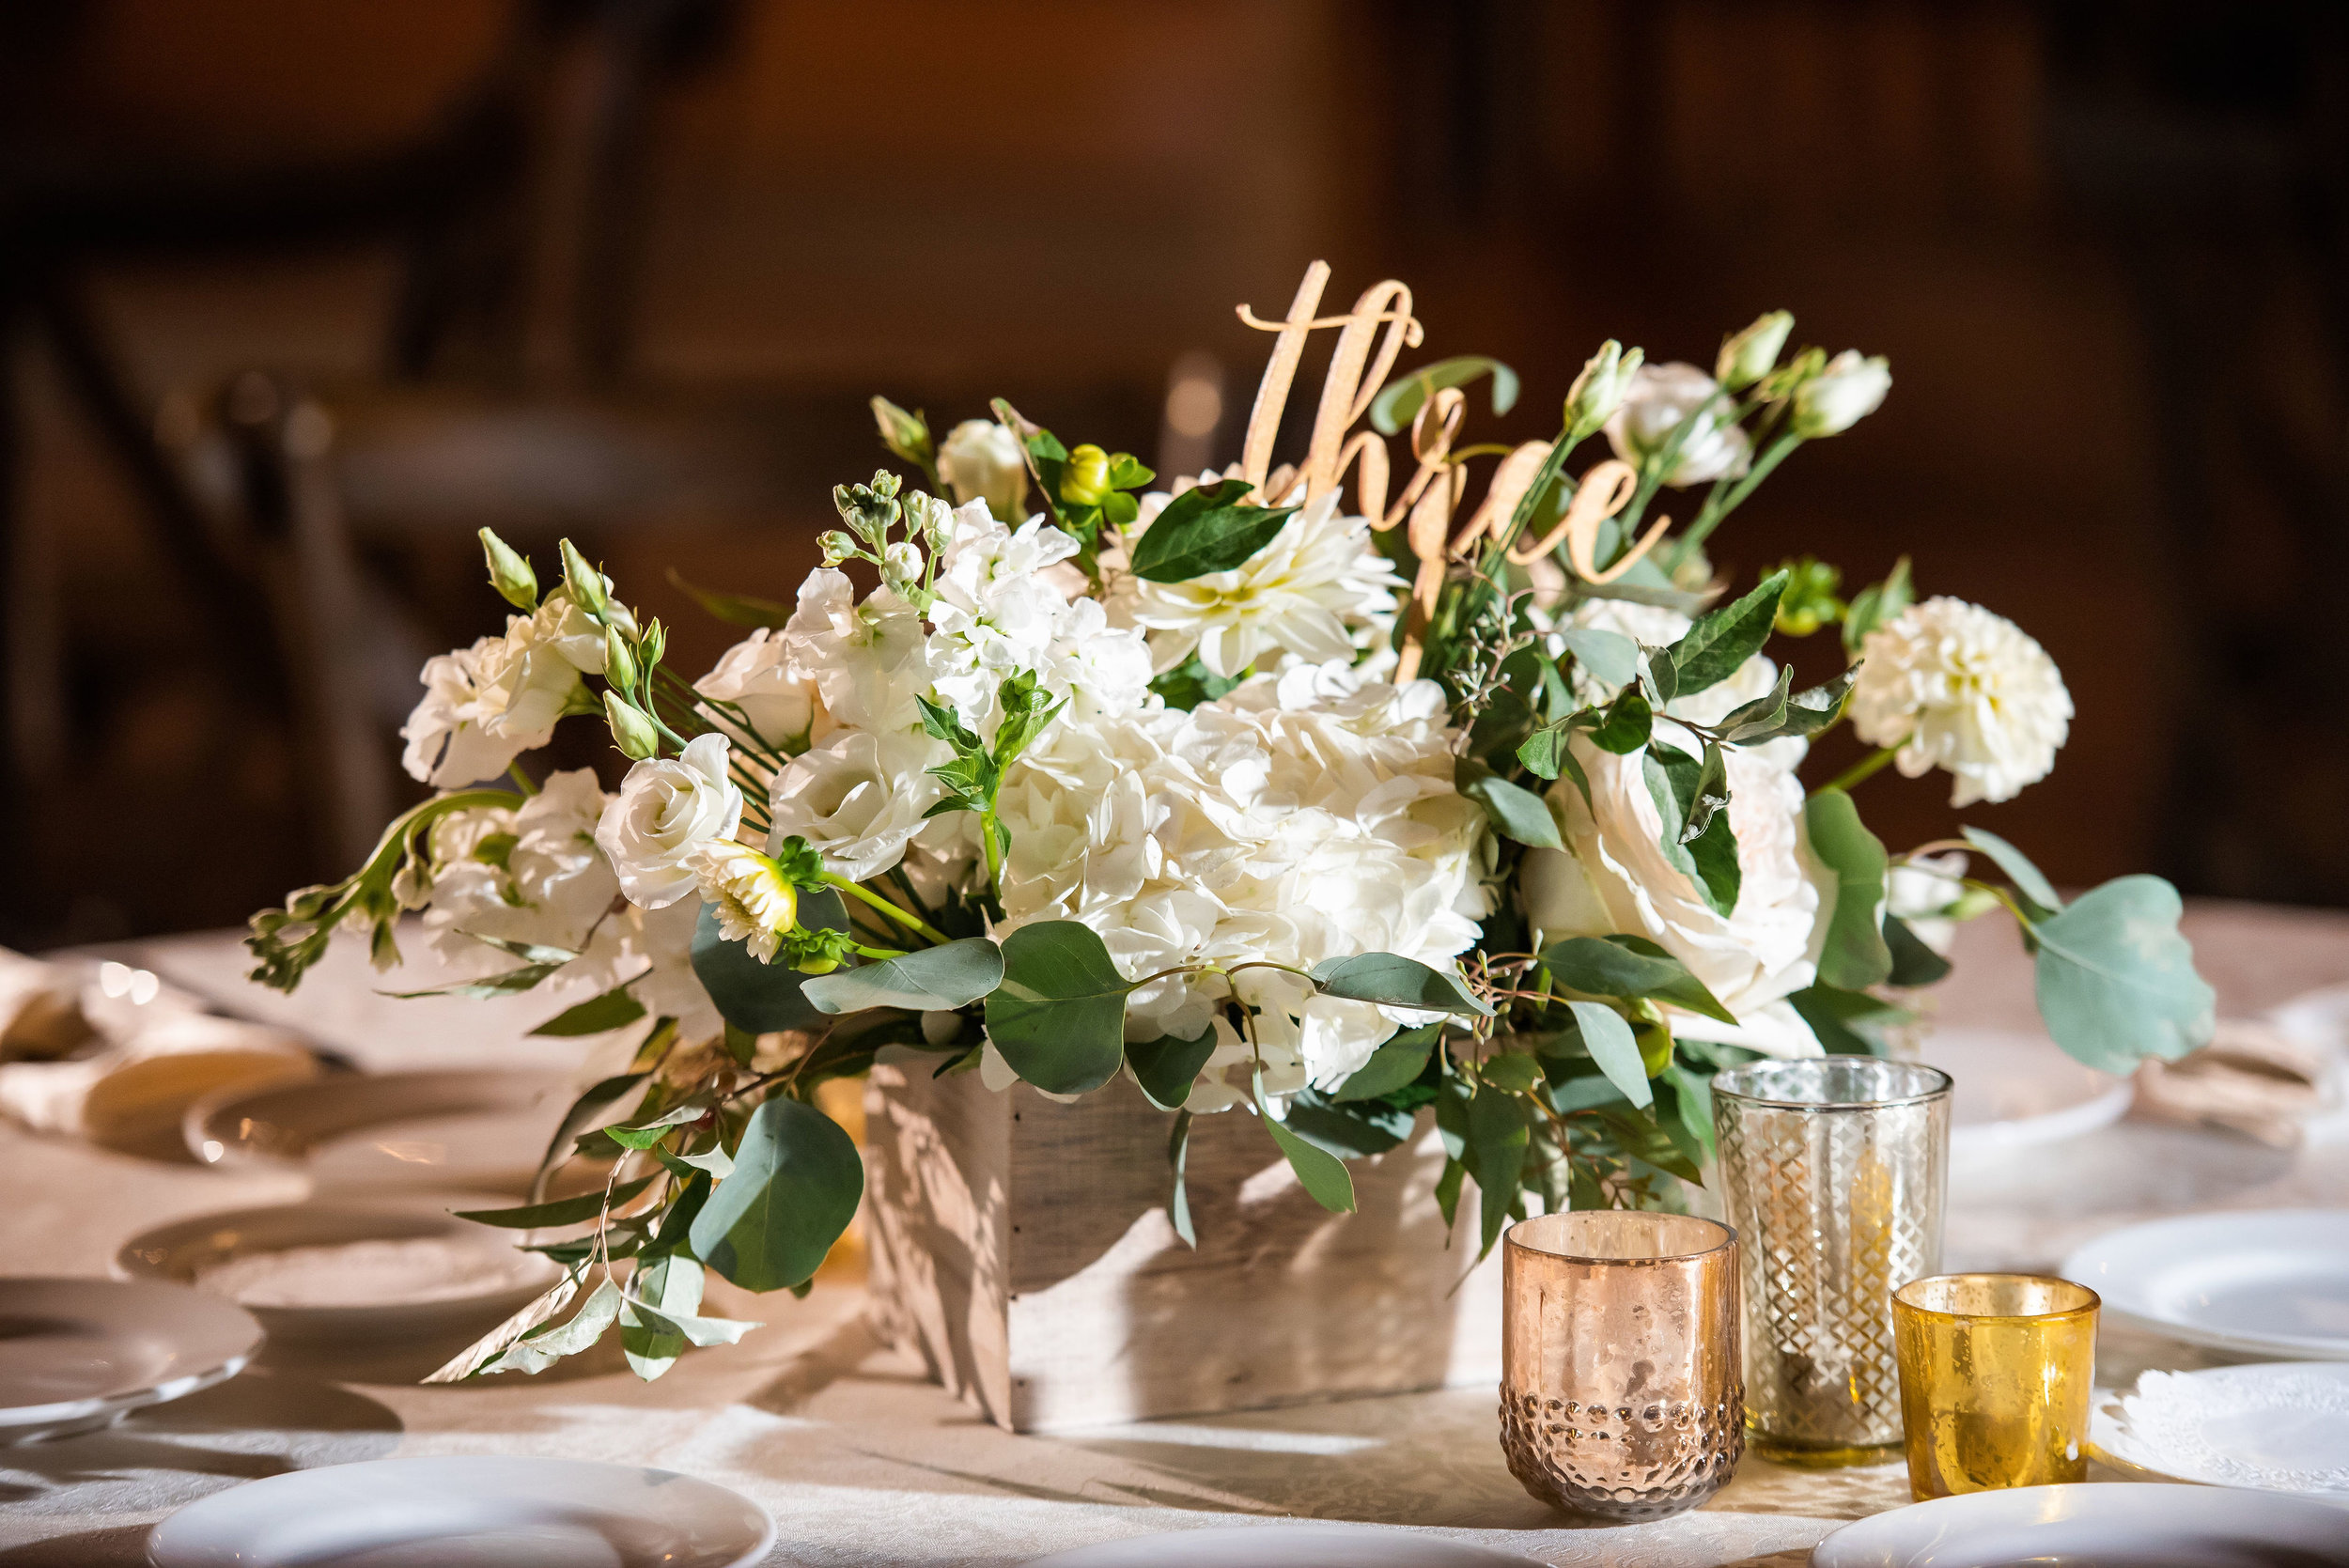 Willow Creek Winery Wedding, Cape May Bride, Tall Centerpiece, Green and White Flowers, Serena Star Photography